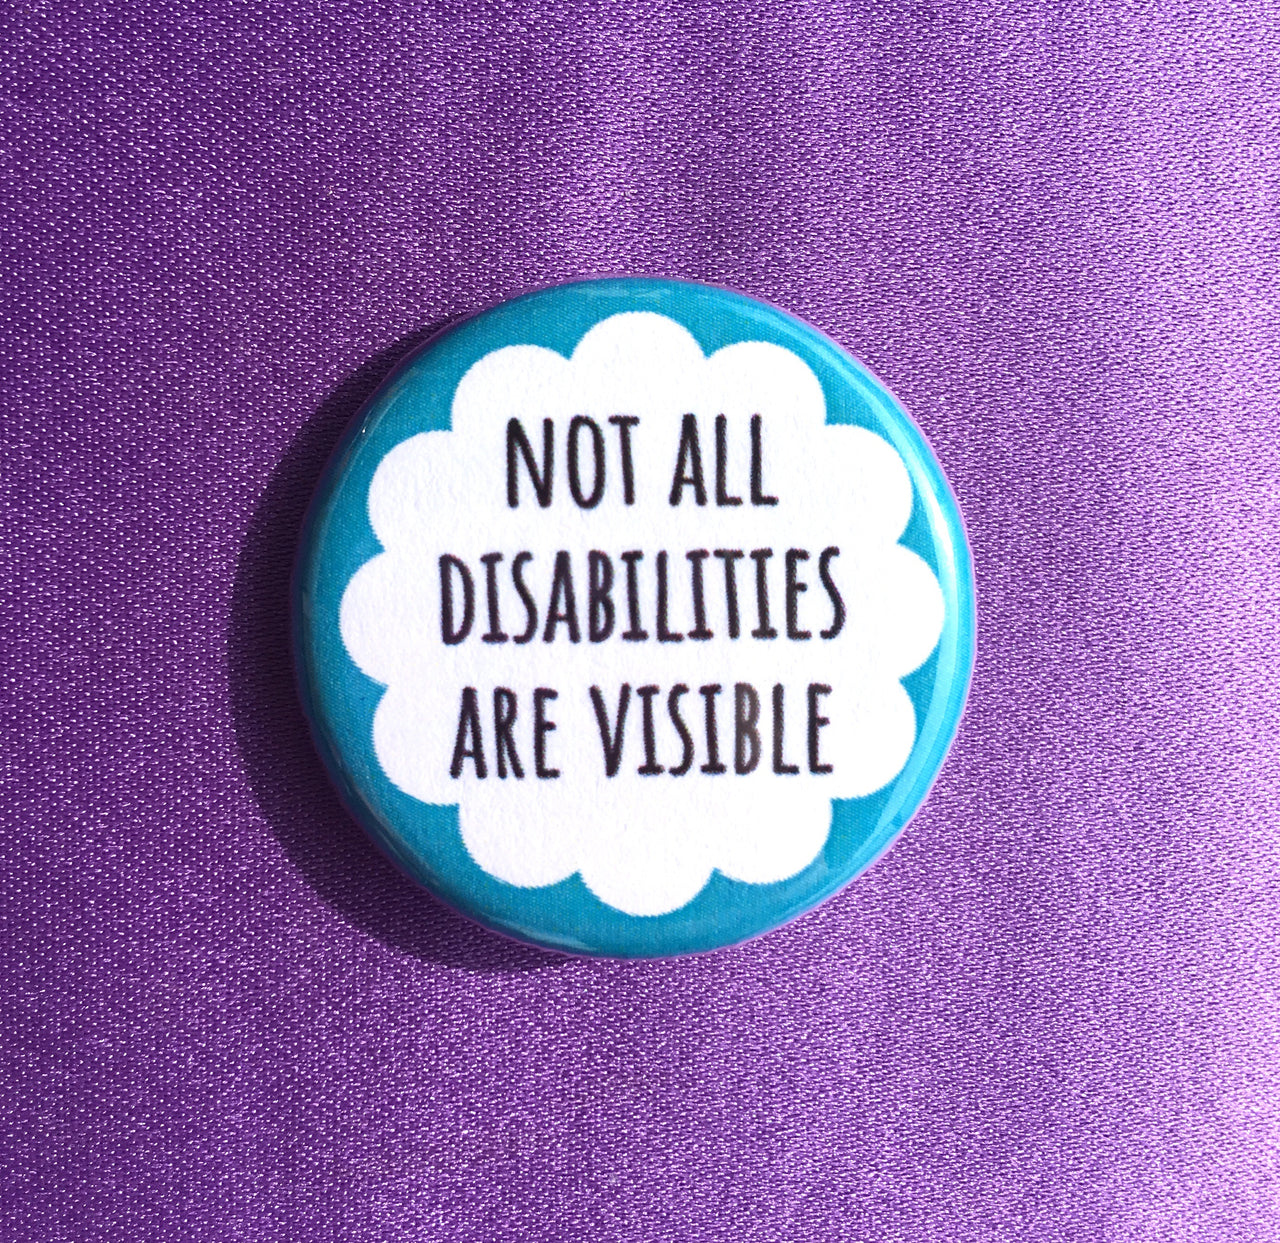 Not all disabilities are visible - Radical Buttons